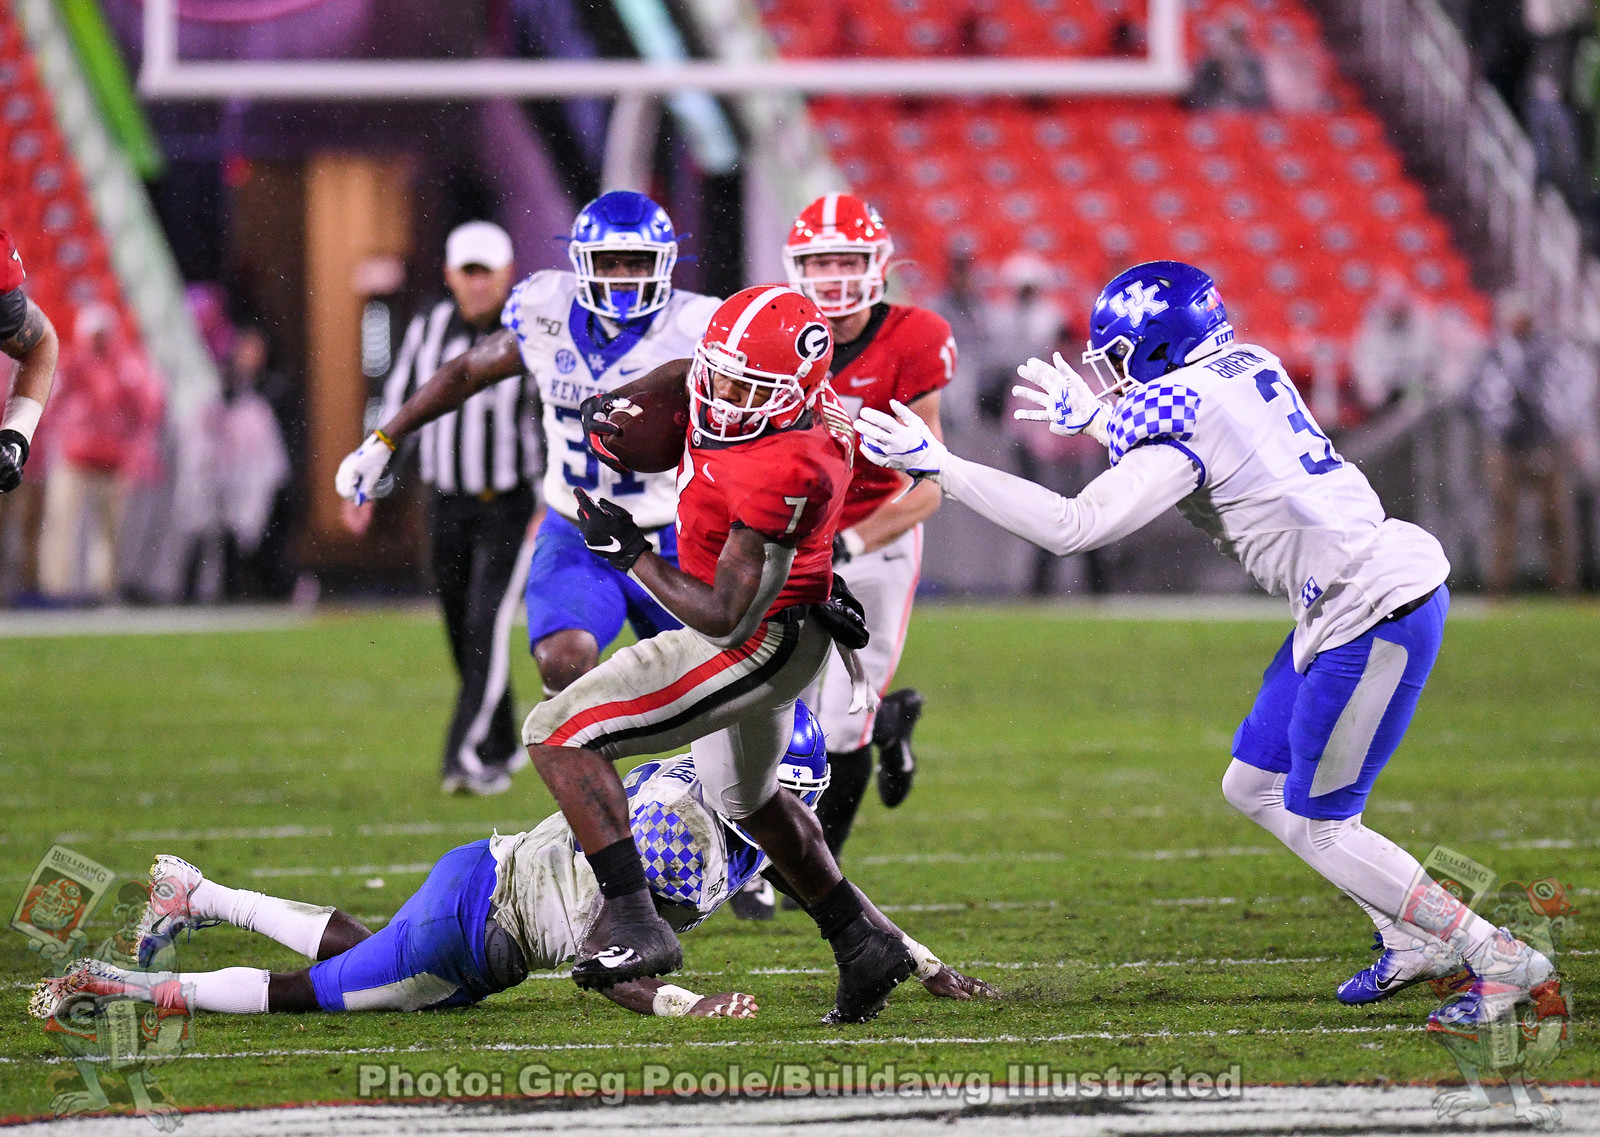 D'Andre Swift (7) ducks and weaves through Wildcat defenders during the third quarter of the Kentucky game on Saturday, October 19, 2019